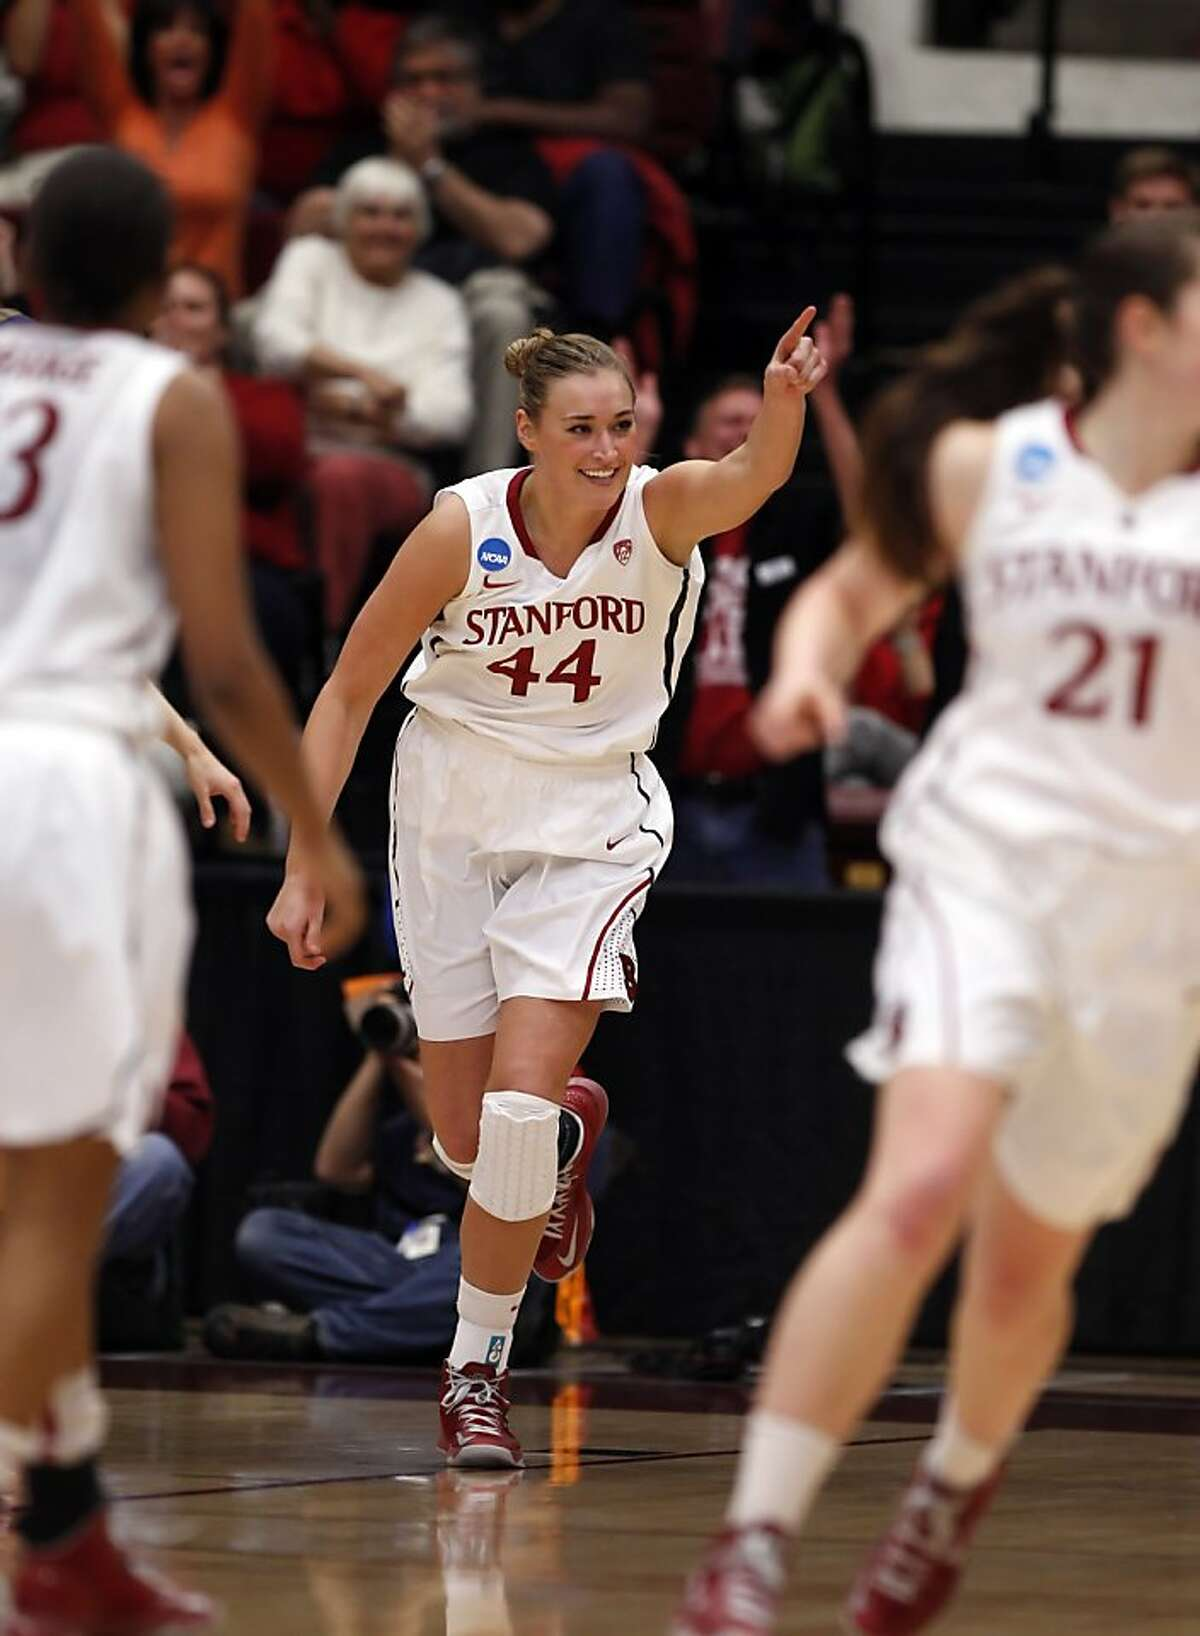 Joslyn Tinkle reacts after scoring in the first half. The Stanford Cardinal played the Michigan Wolverines at Maples Pavilion in Stanford, Calif., on Tuesday, March 26, 2013.